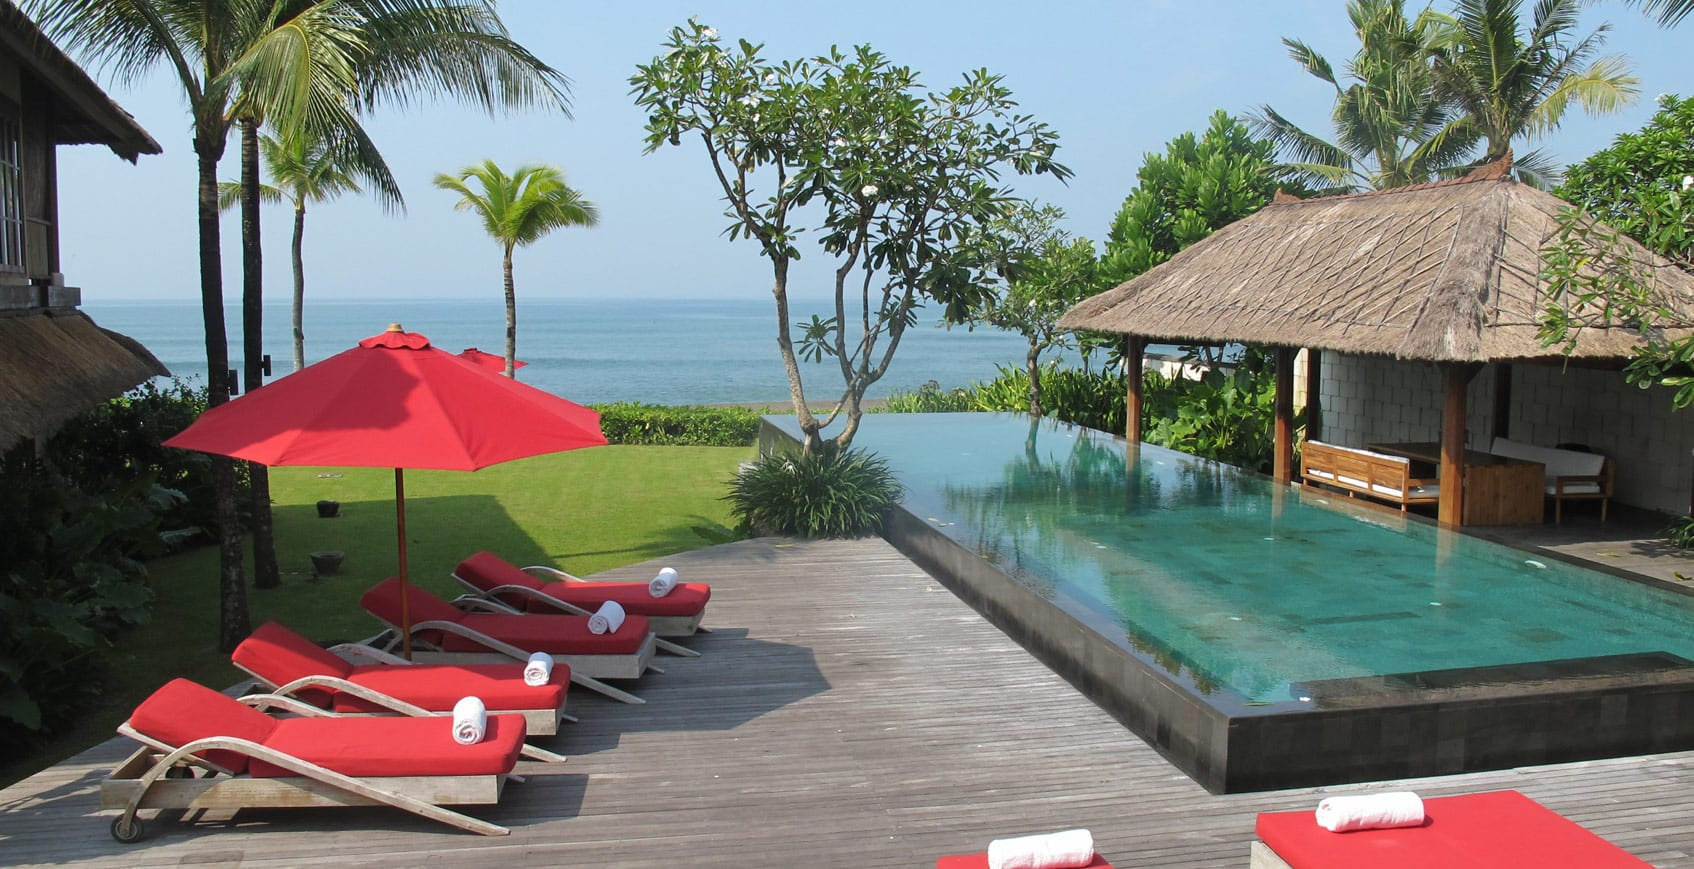 Villa Sound of the Sea Bali - Pool - Canggu, Bali